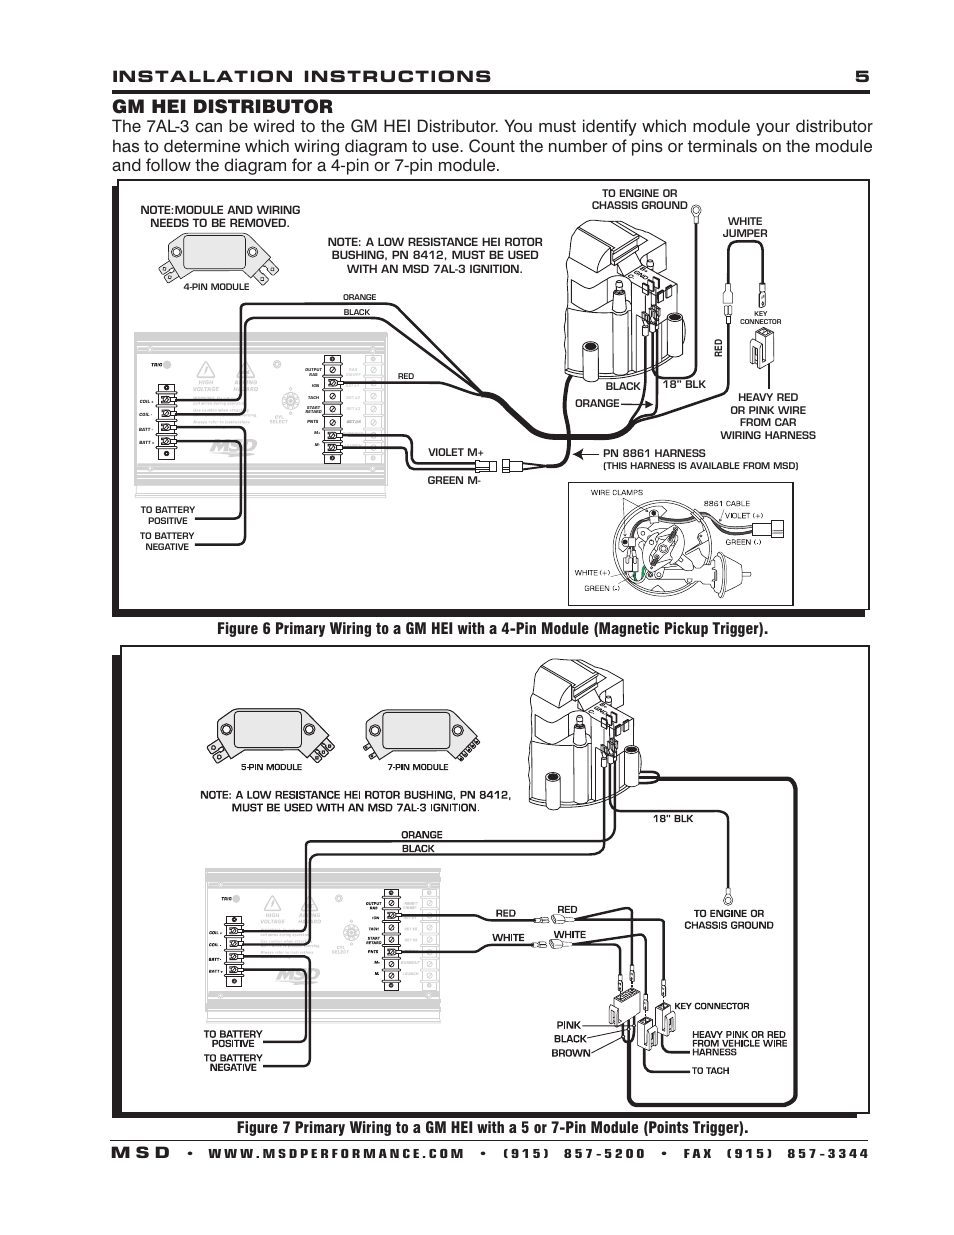 msd 7330 7al 3 ignition control installation page5 gm hei distributor, installation instructions 5 m s d msd 7330 msd 7al wiring diagram at honlapkeszites.co